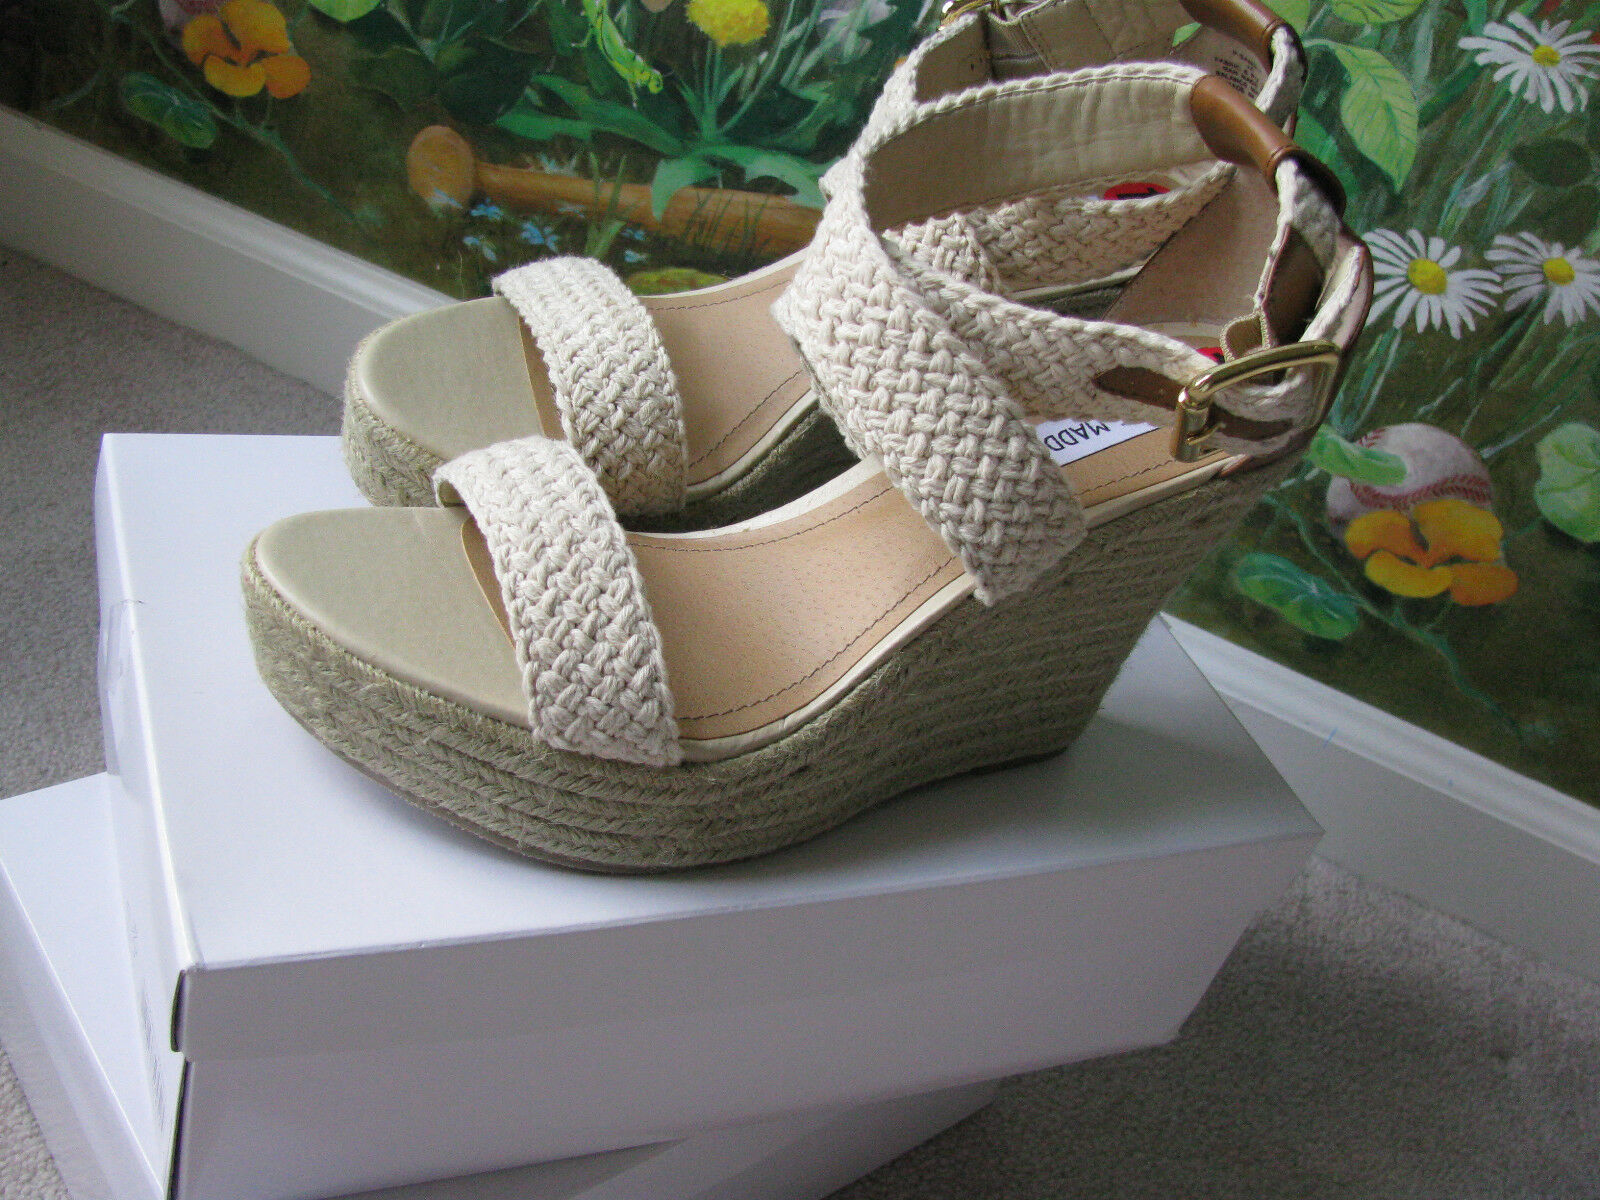 STEVE MADDEN Women's Natural Wedge shoes  Sandals Size 10M